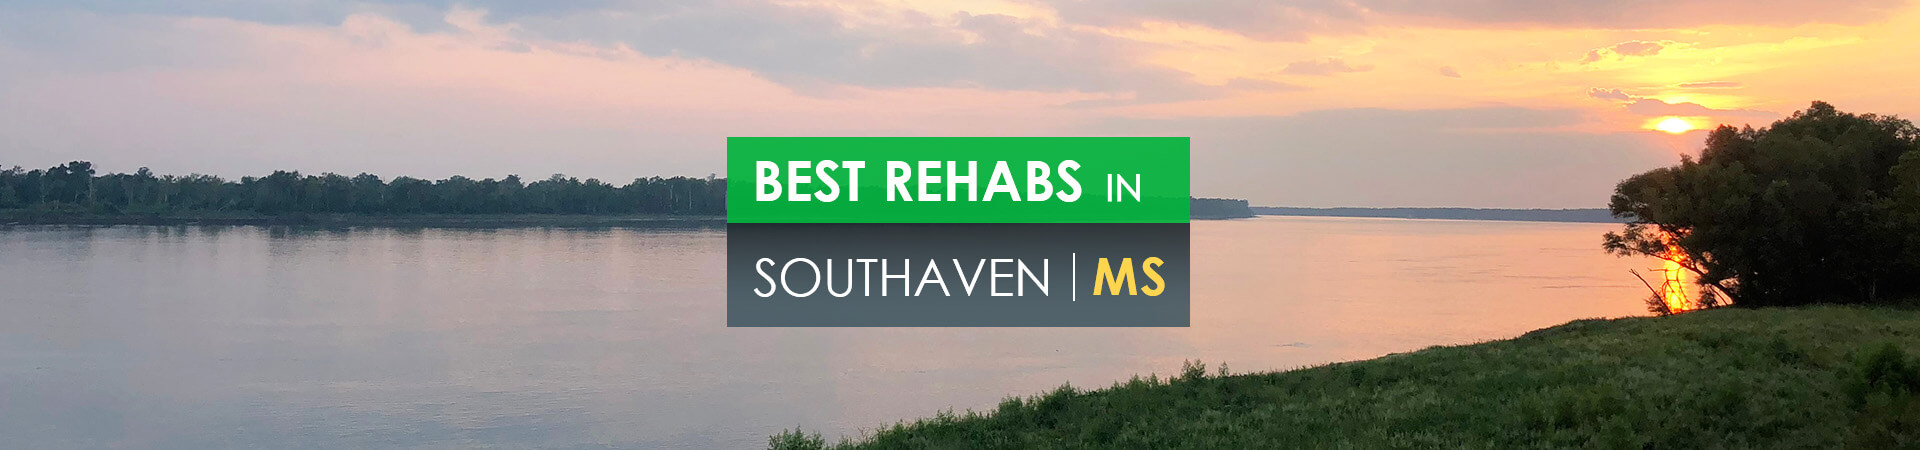 Best rehabs in Southaven, MS